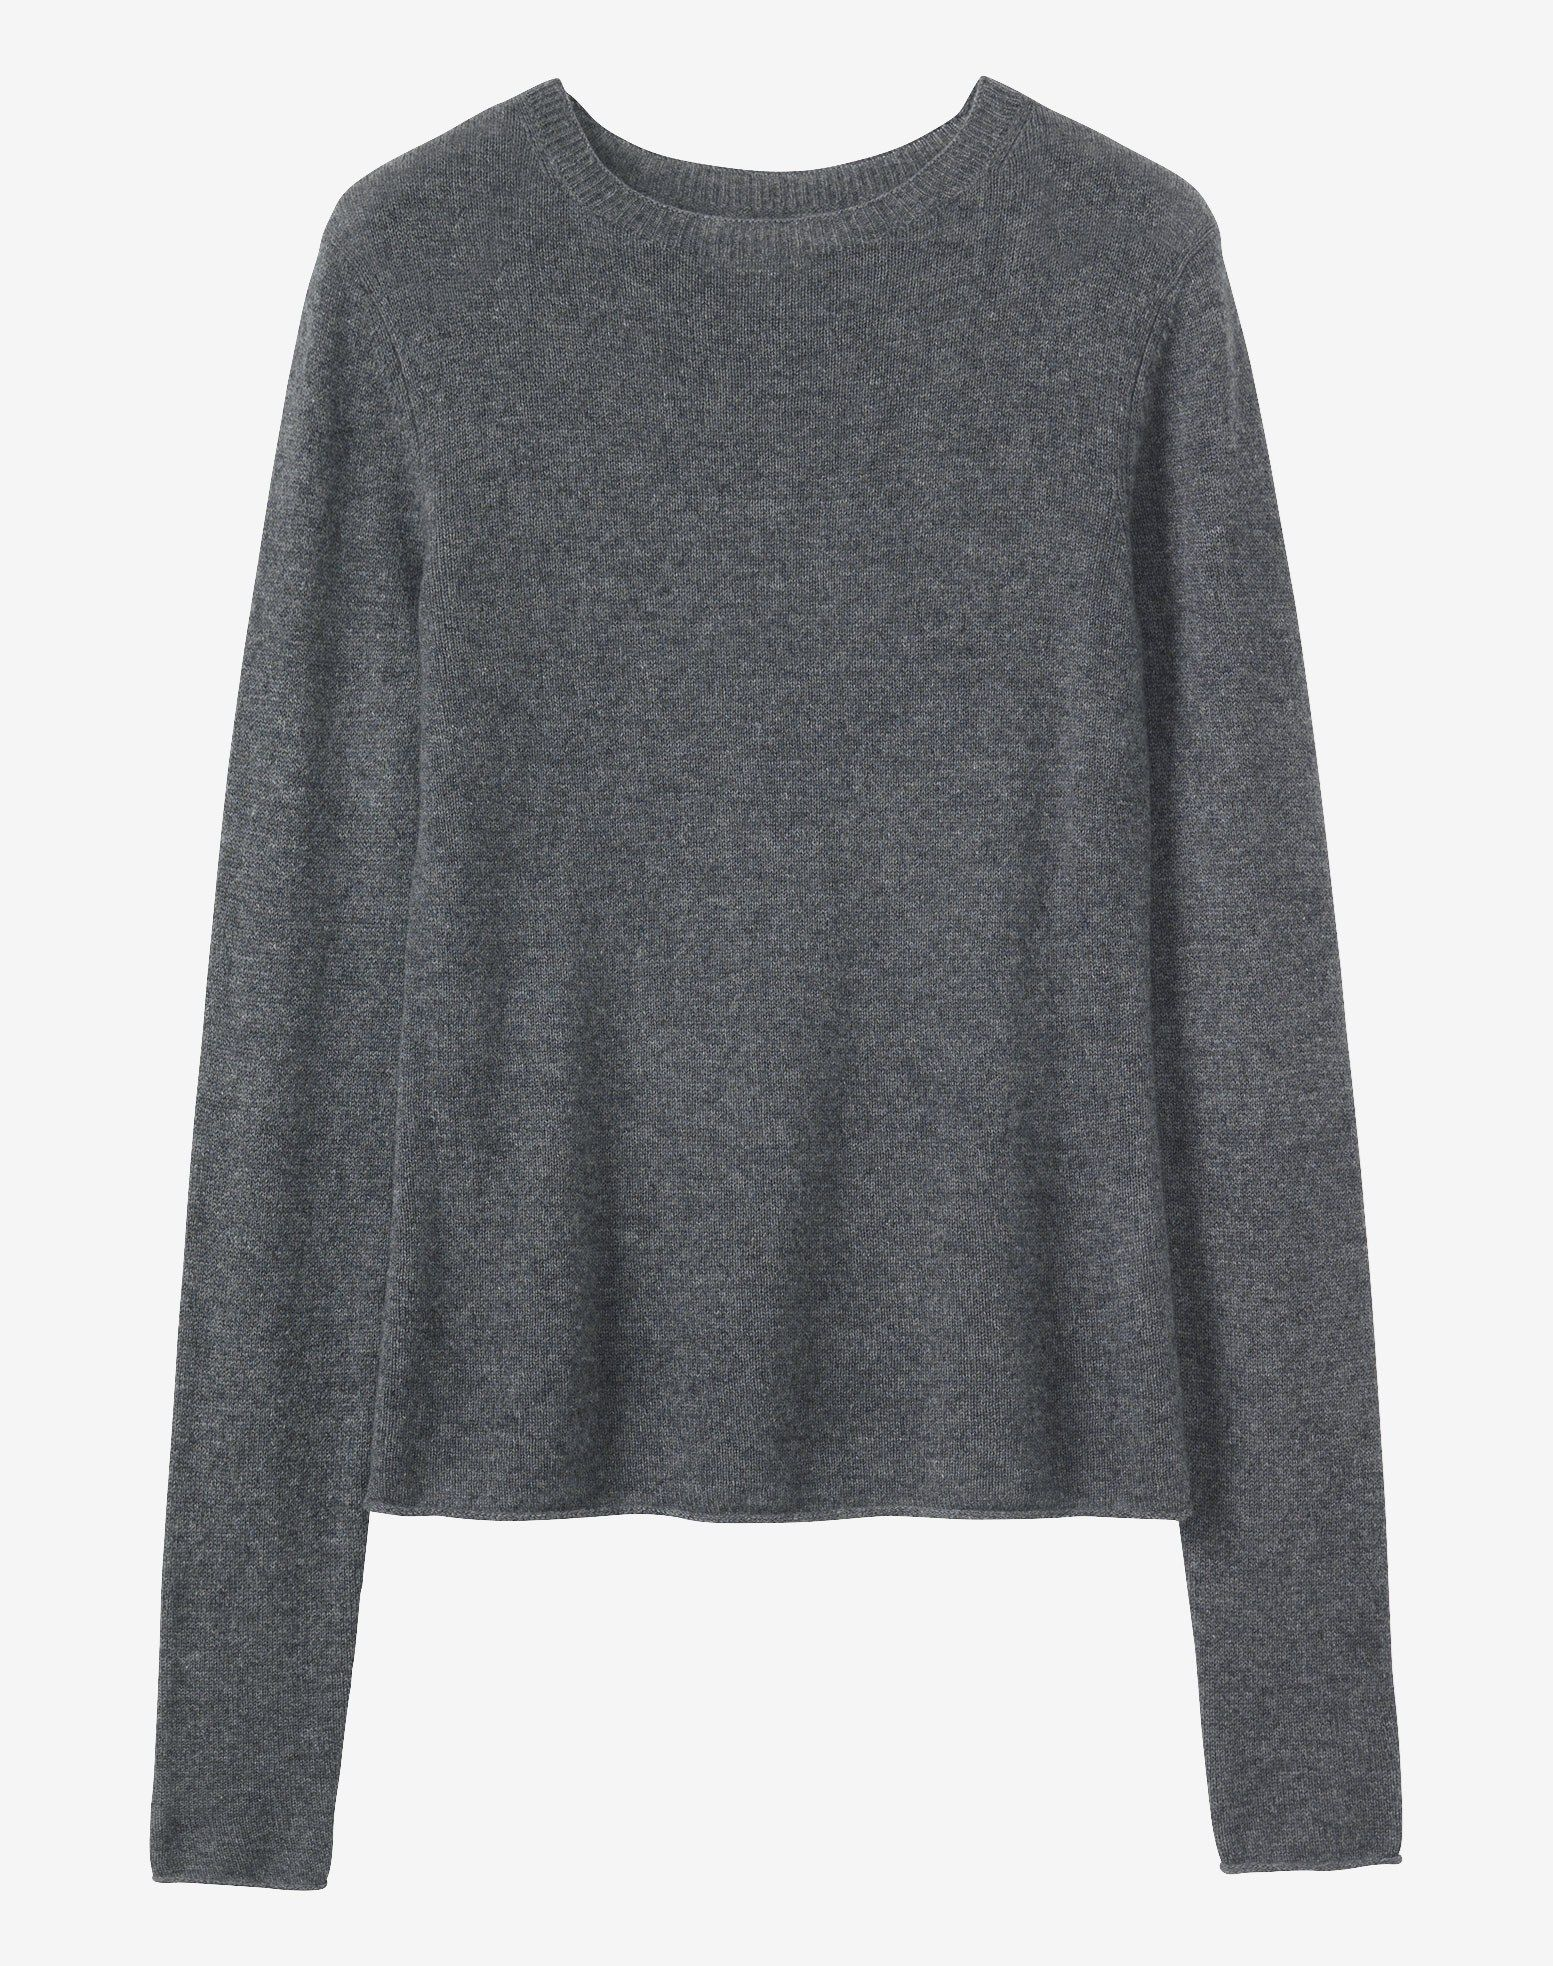 Neatly fitting pullover in a featherweight, soft and lofty cashmere/wool. Slightly dropped shoulders. Very long, cosy sleeves. Rolled edge at cuffs and hem.